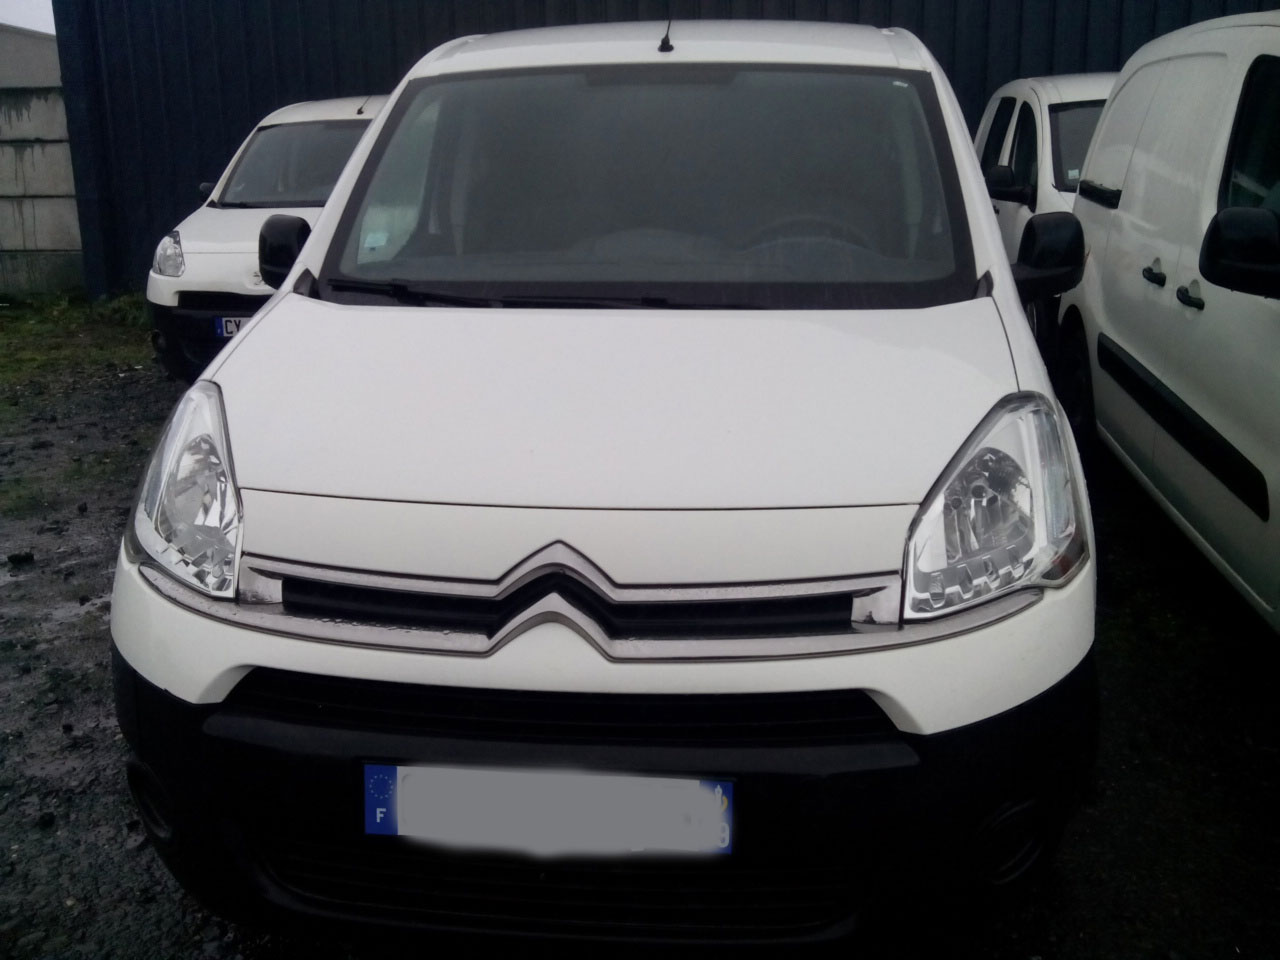 Voiture Citroen Berlingo (10/01/2014) - blanc - lieu: Lille - Paris